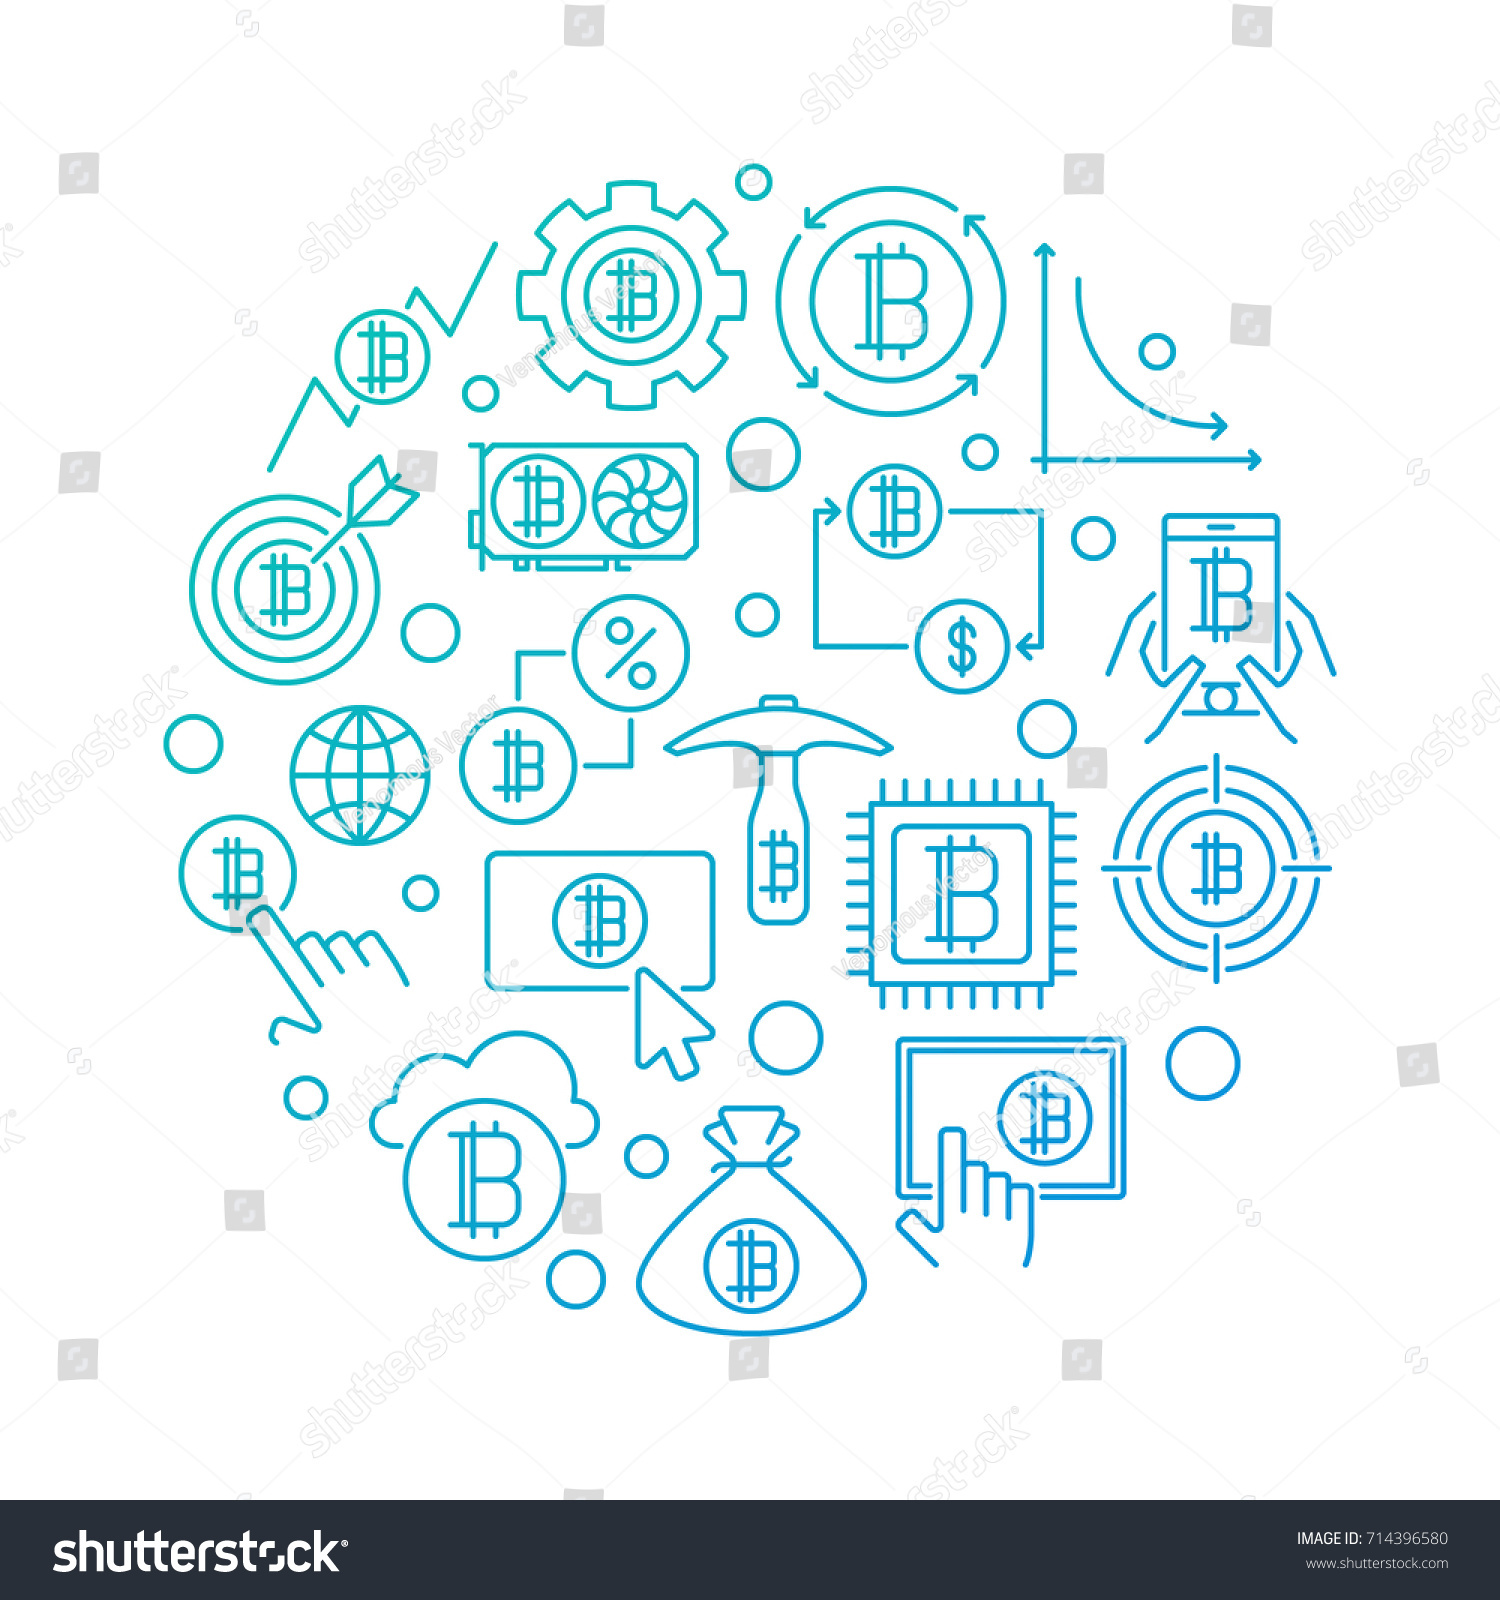 Colorful Crypto Currency Round Symbol Vector Stock Vector (Royalty ...